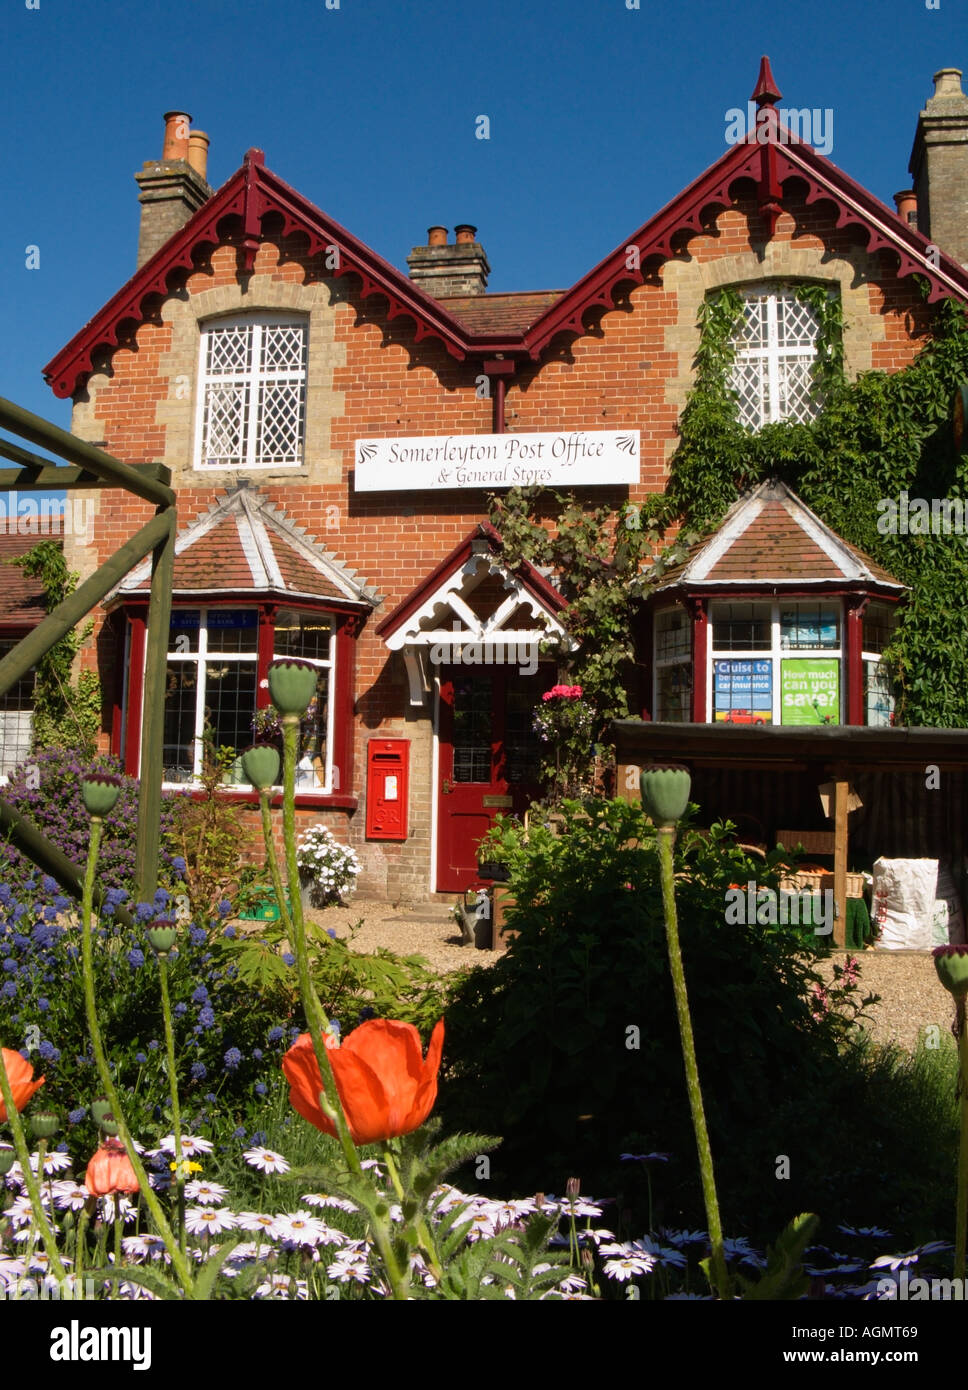 Somerleyton Village Post Office Countryside Rural Scene Stock Photo